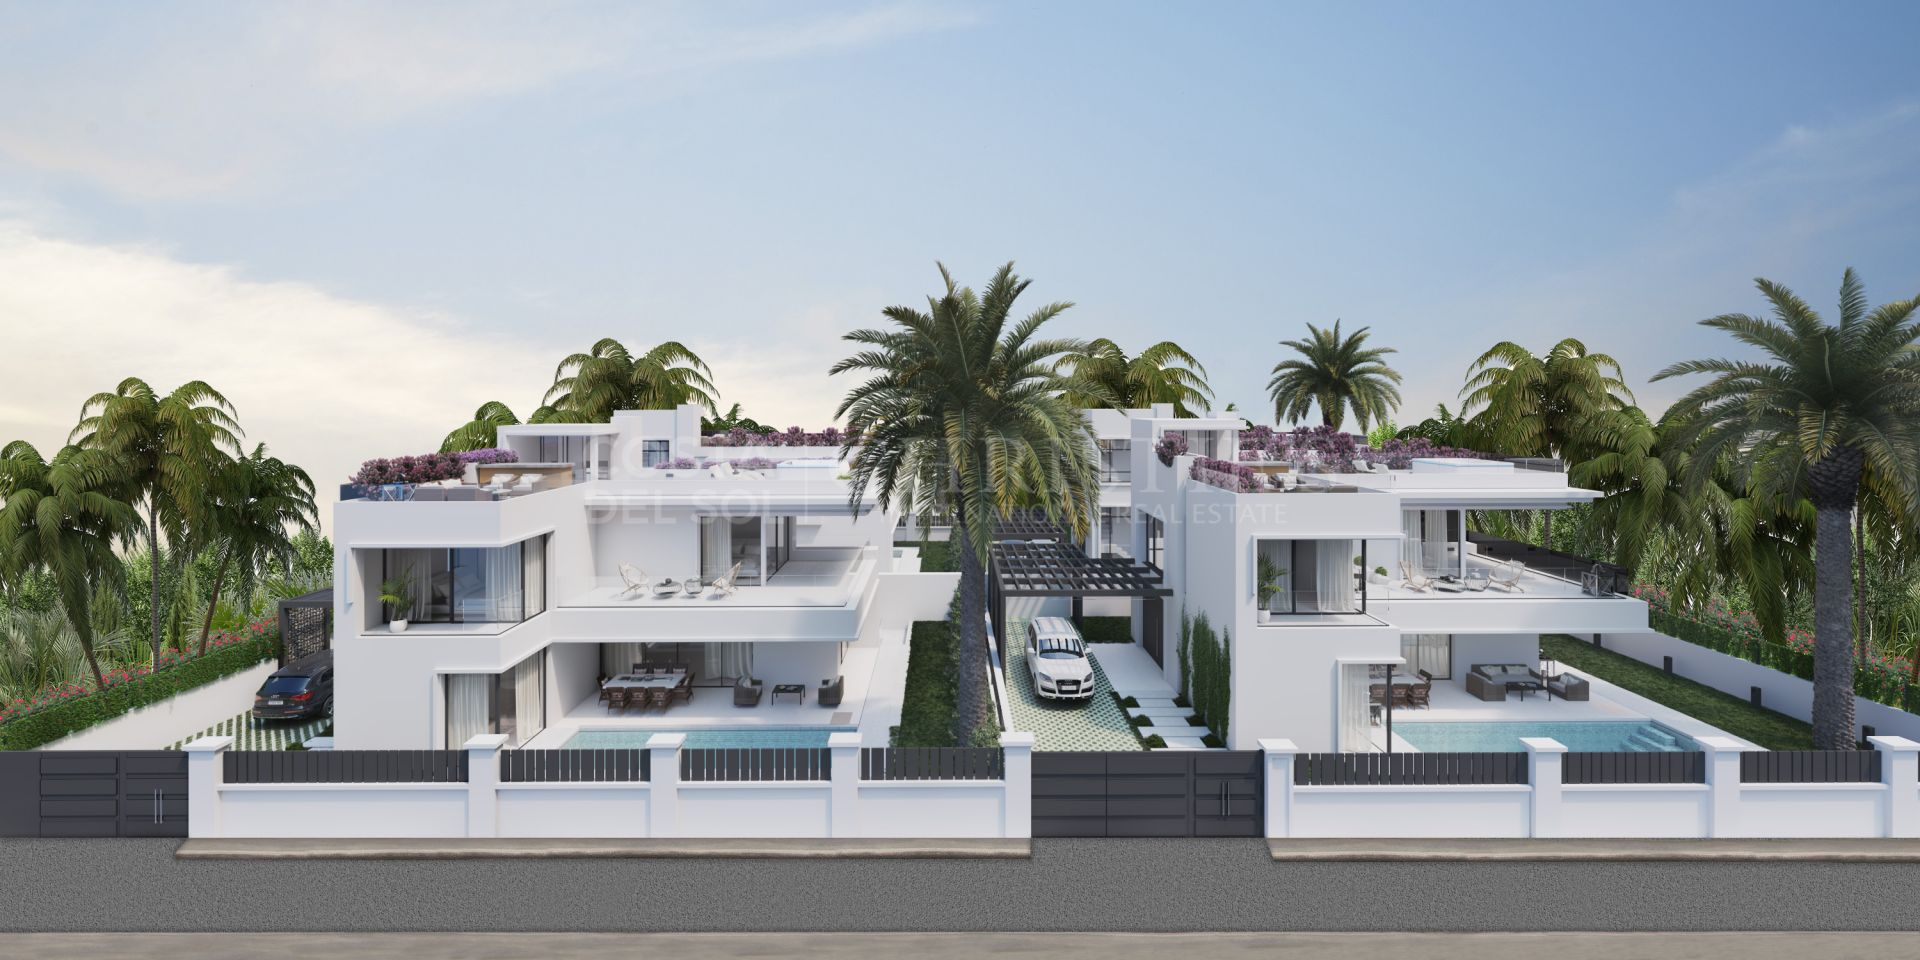 Vastgoedproject in Rio Verde, Marbella Golden Mile